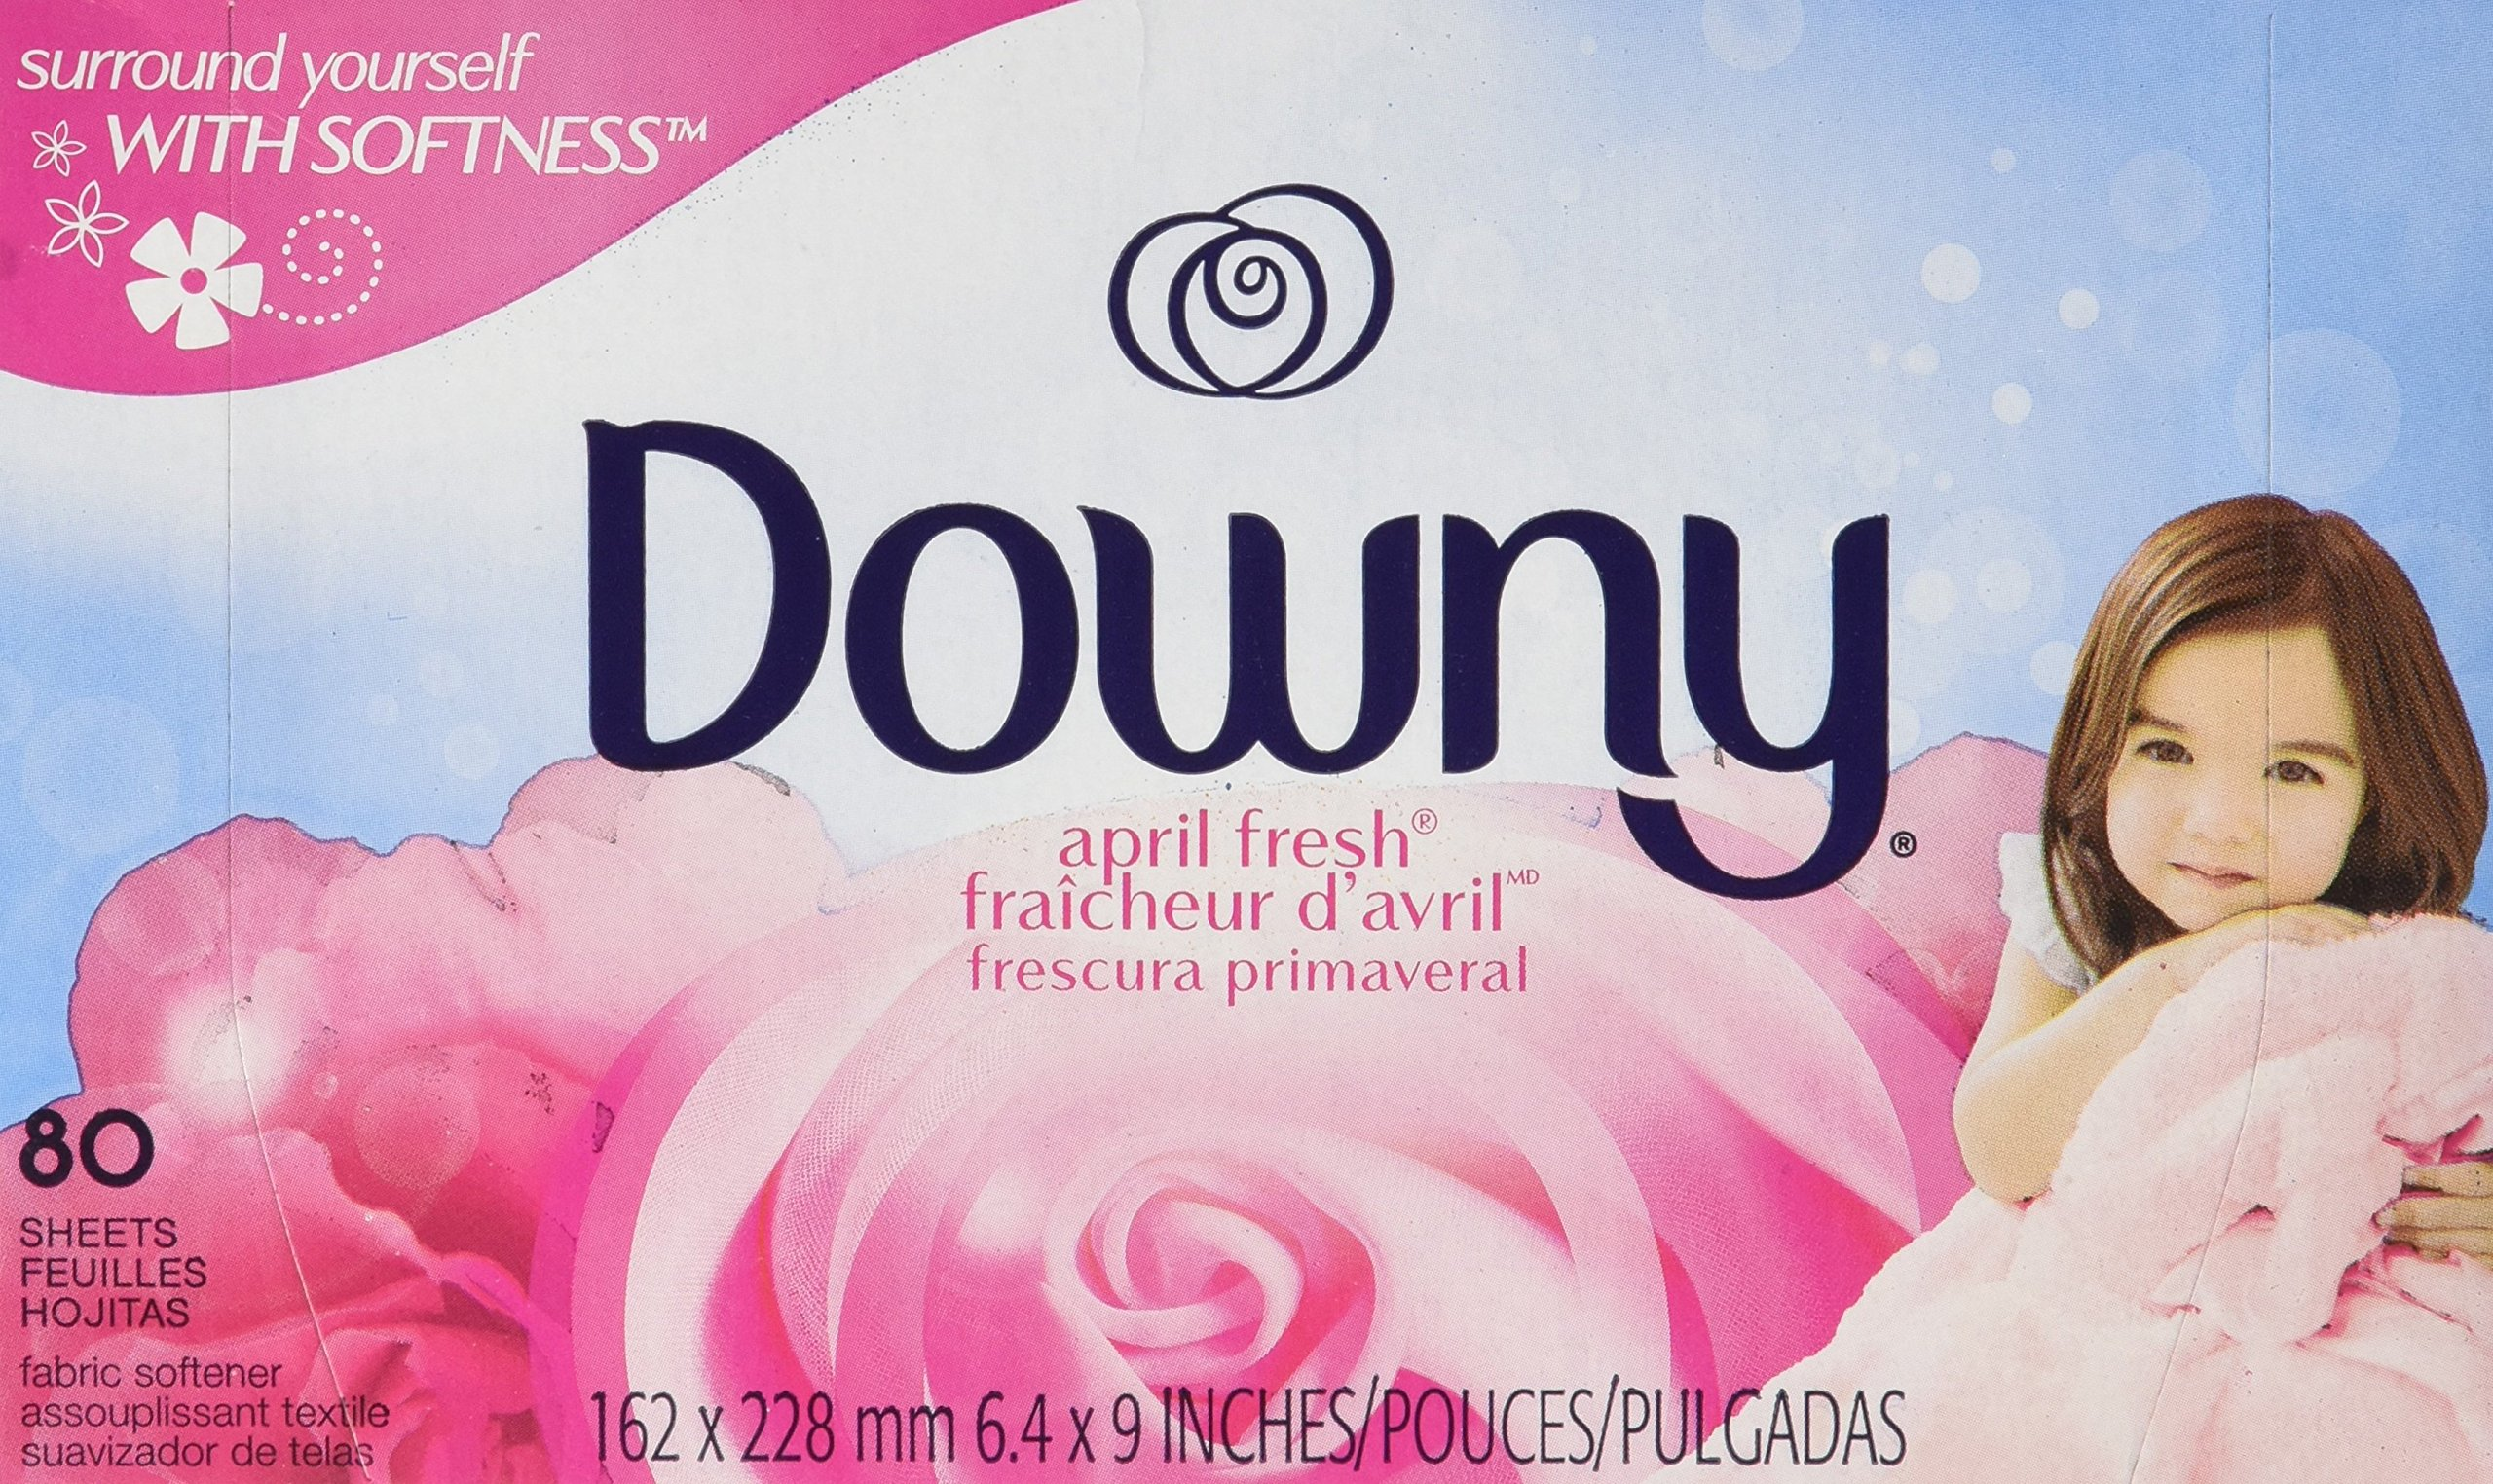 Downy Fabric Softener Dryer Sheets, April Fresh Scent, 80 Count